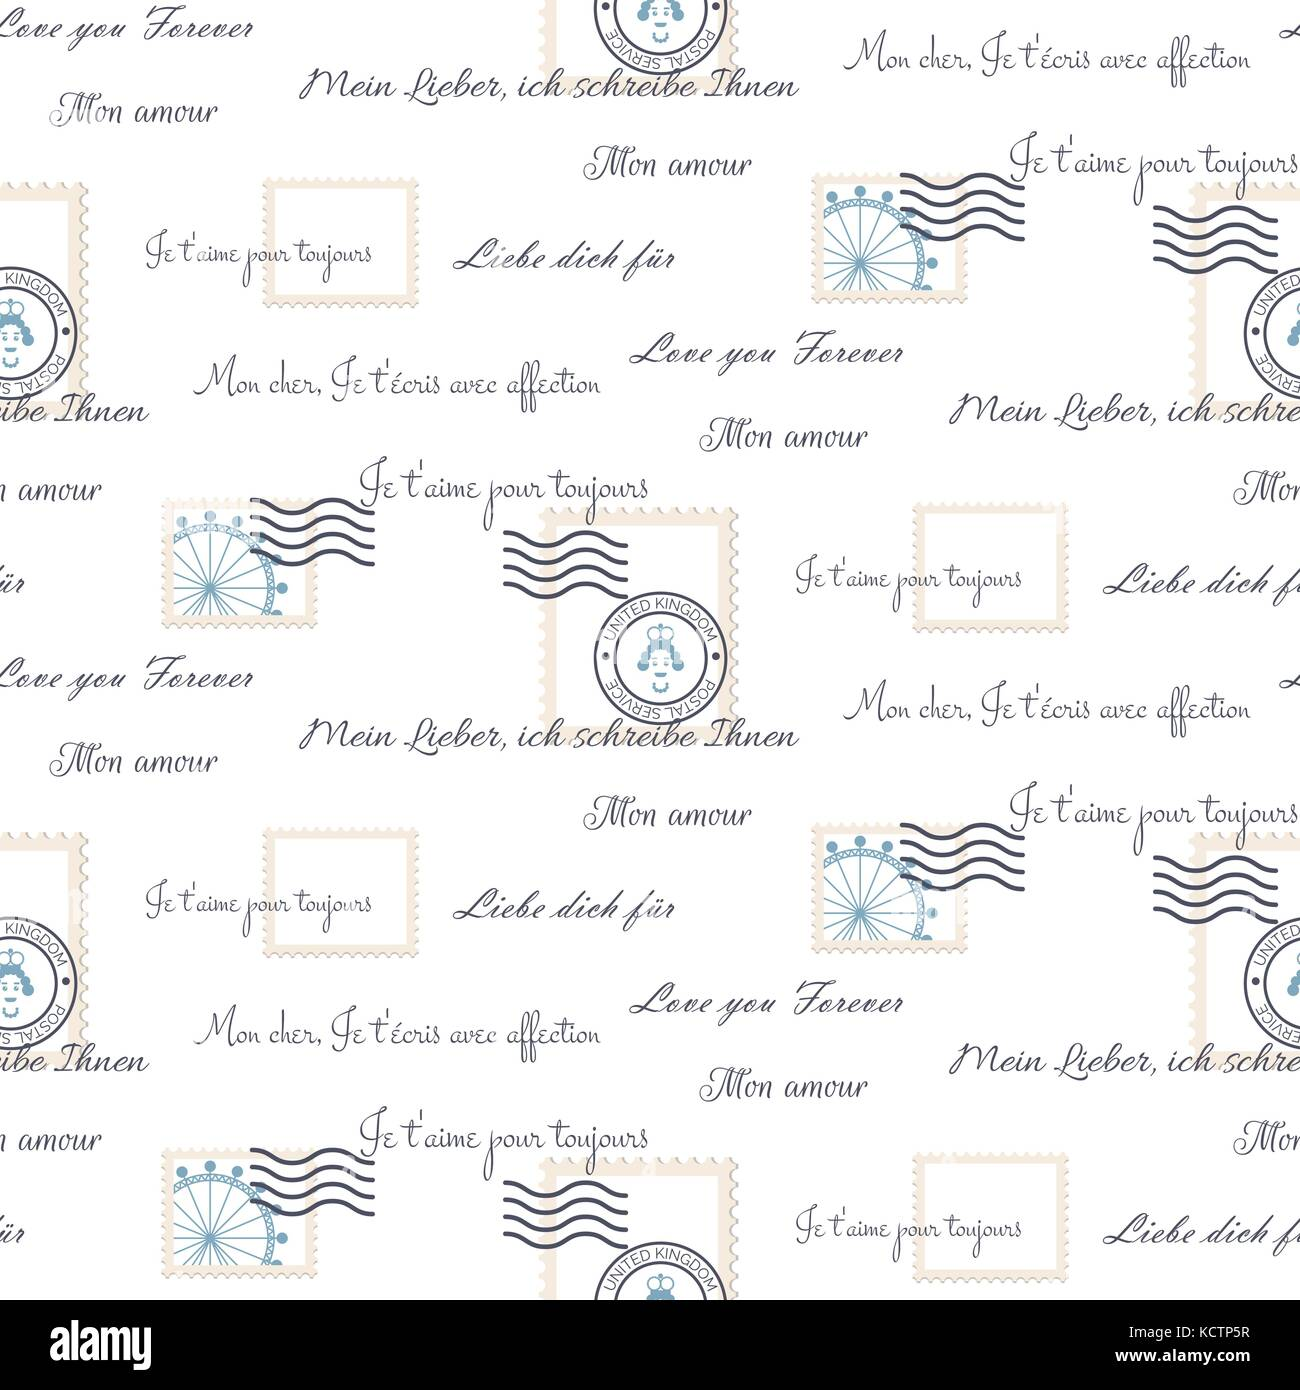 Romantic Love Letters | Romantic Love Letters Seamless Vector Pattern On White Inscriptions